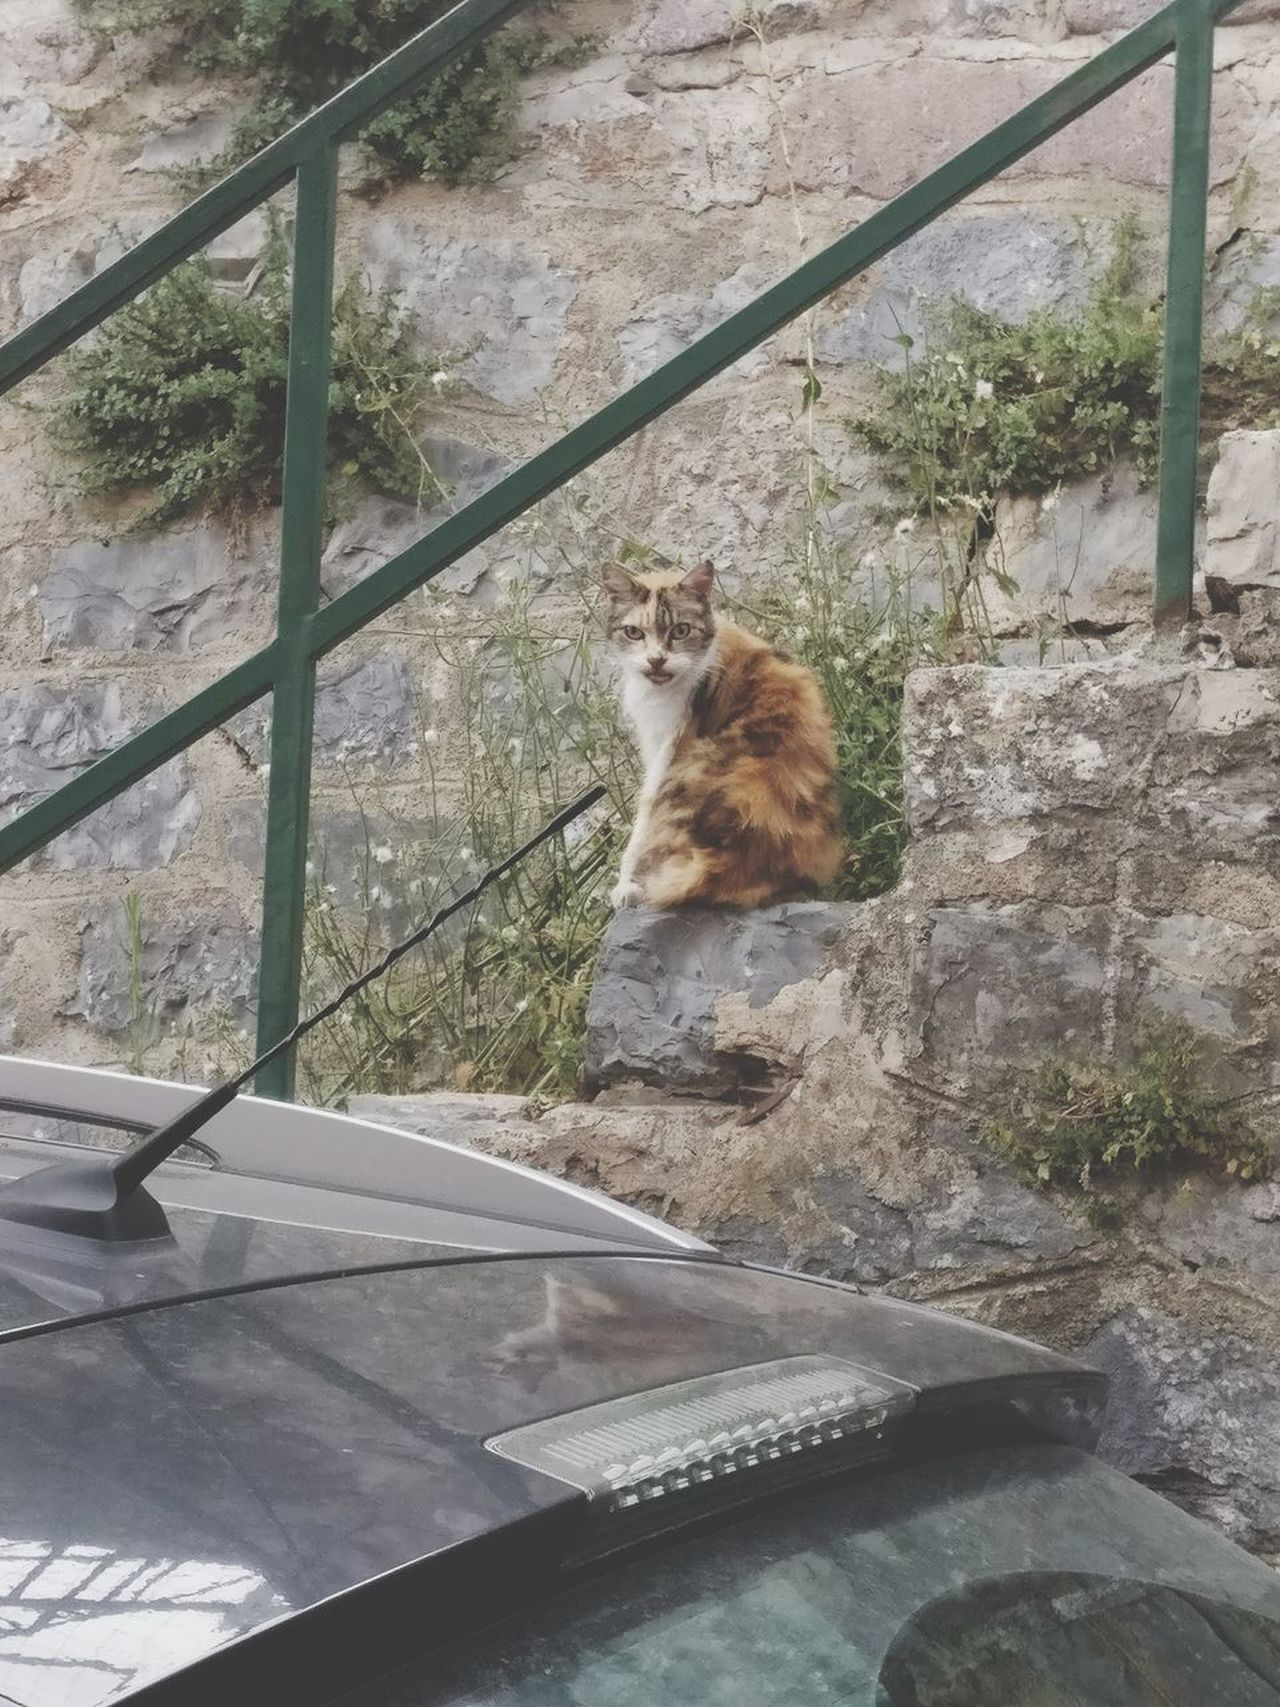 Cat 🐱 Mammal One Animal Animal Themes Day Domestic Cat No People Sitting Outdoors Domestic Animals Feline Animals In The Wild Pets Nature Retaining Wall Beauty In Nature Summer Travel Destinations Light Freshness